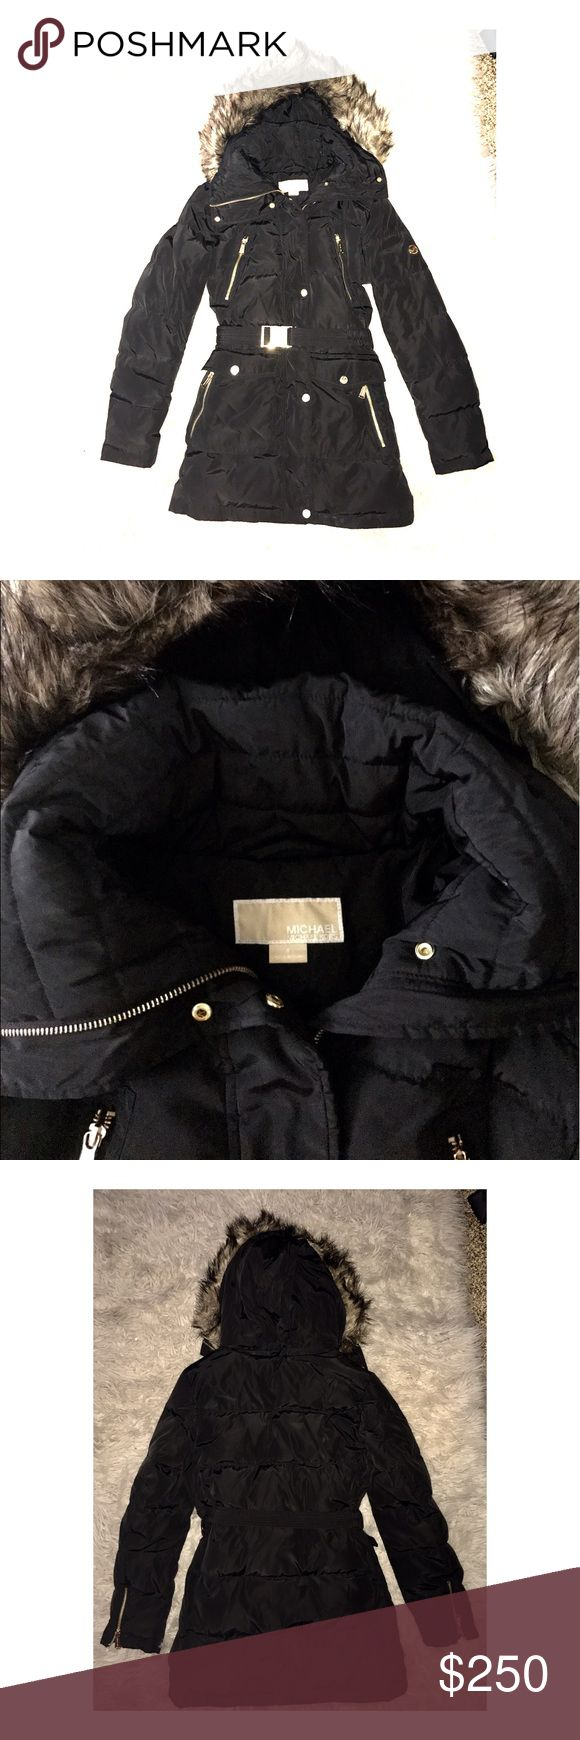 Michael Kors puffer coat Michael Kors Black Faux Fur Hooded Belted Puffer Down Coat. Removable zip-off hood Down and feathers fill Zipper closure with snap overlay at front Shell & lining:polyester; fill: down/feathers; faux-fur-trim: modacrylic/acrylic ,Machine washable. Michael Kors Jackets & Coats Puffers